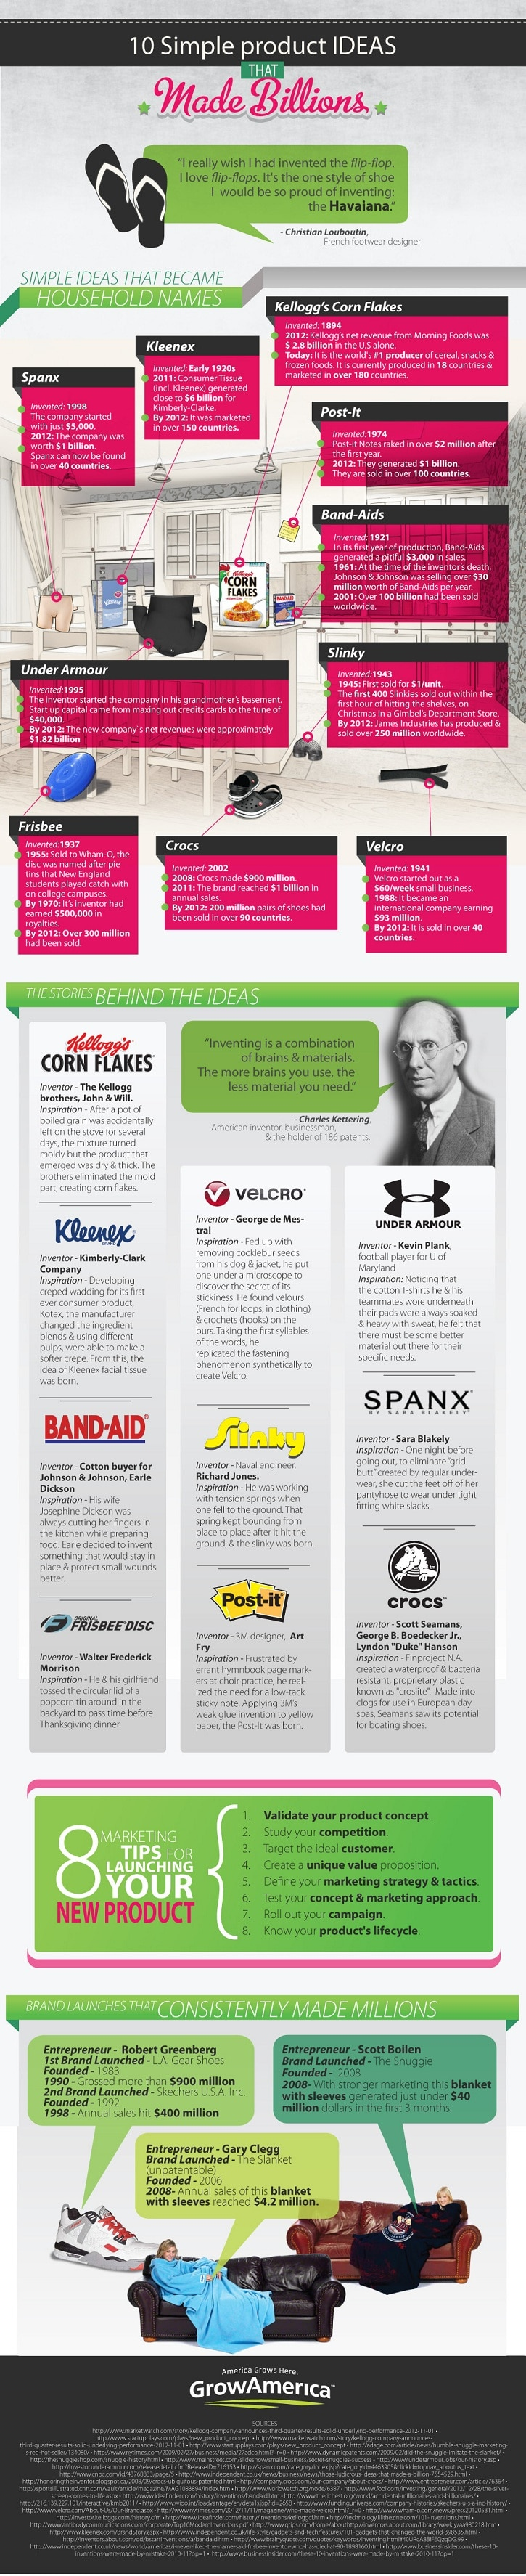 10 Really Simple Product Ideas That Made Billions [Infographic]